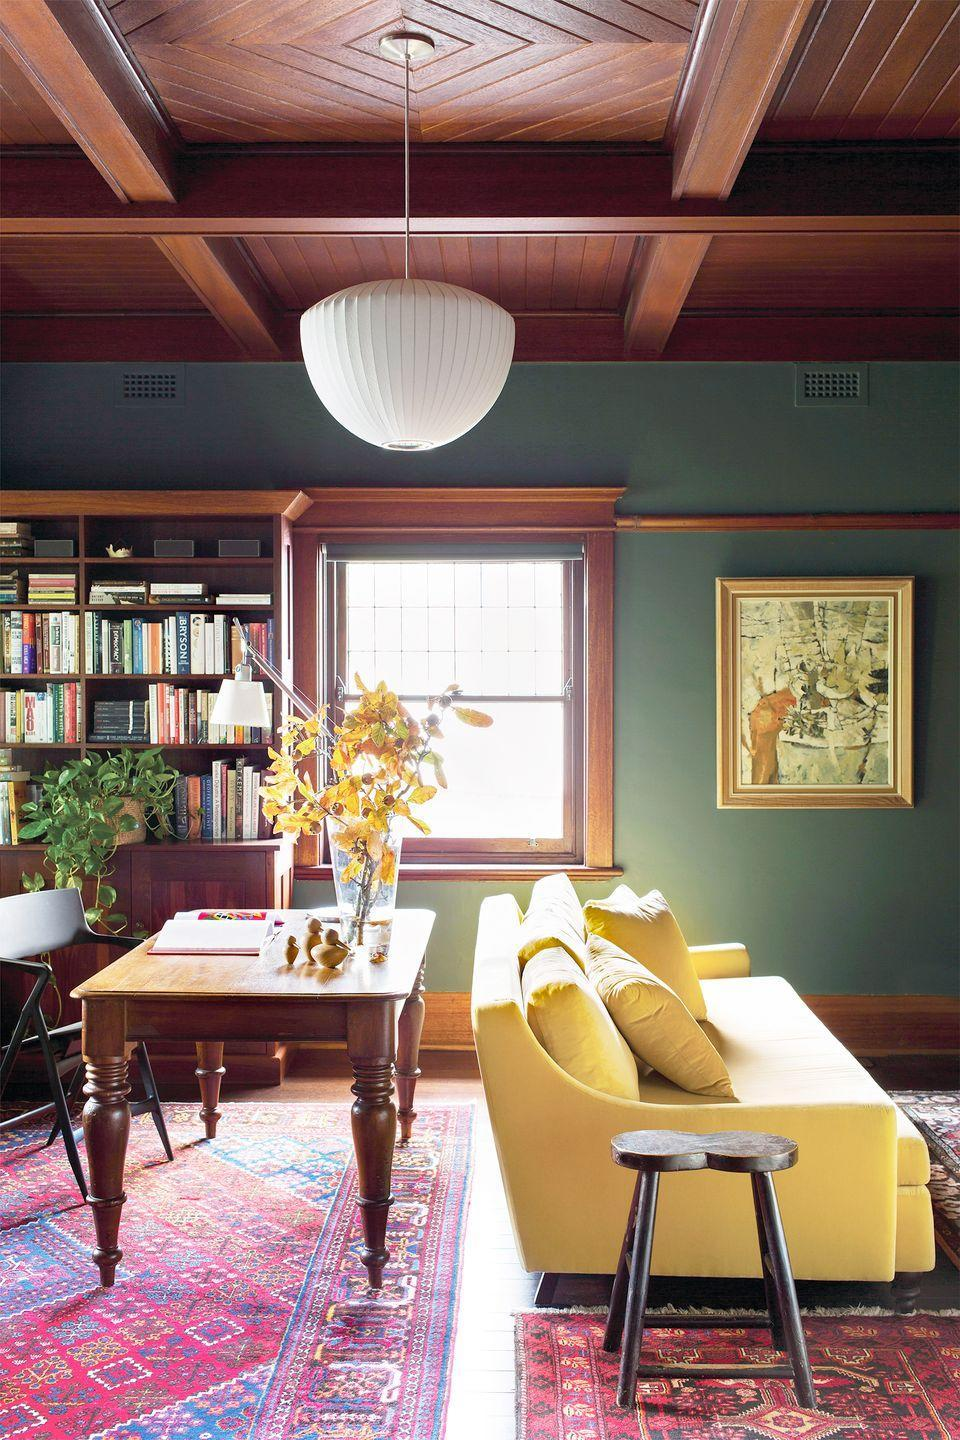 <p>A moody shade of army green paint complements the mahogany wood details in this living room, while the sunny yellow sofa and pink layered rugs brighten up the space. </p>